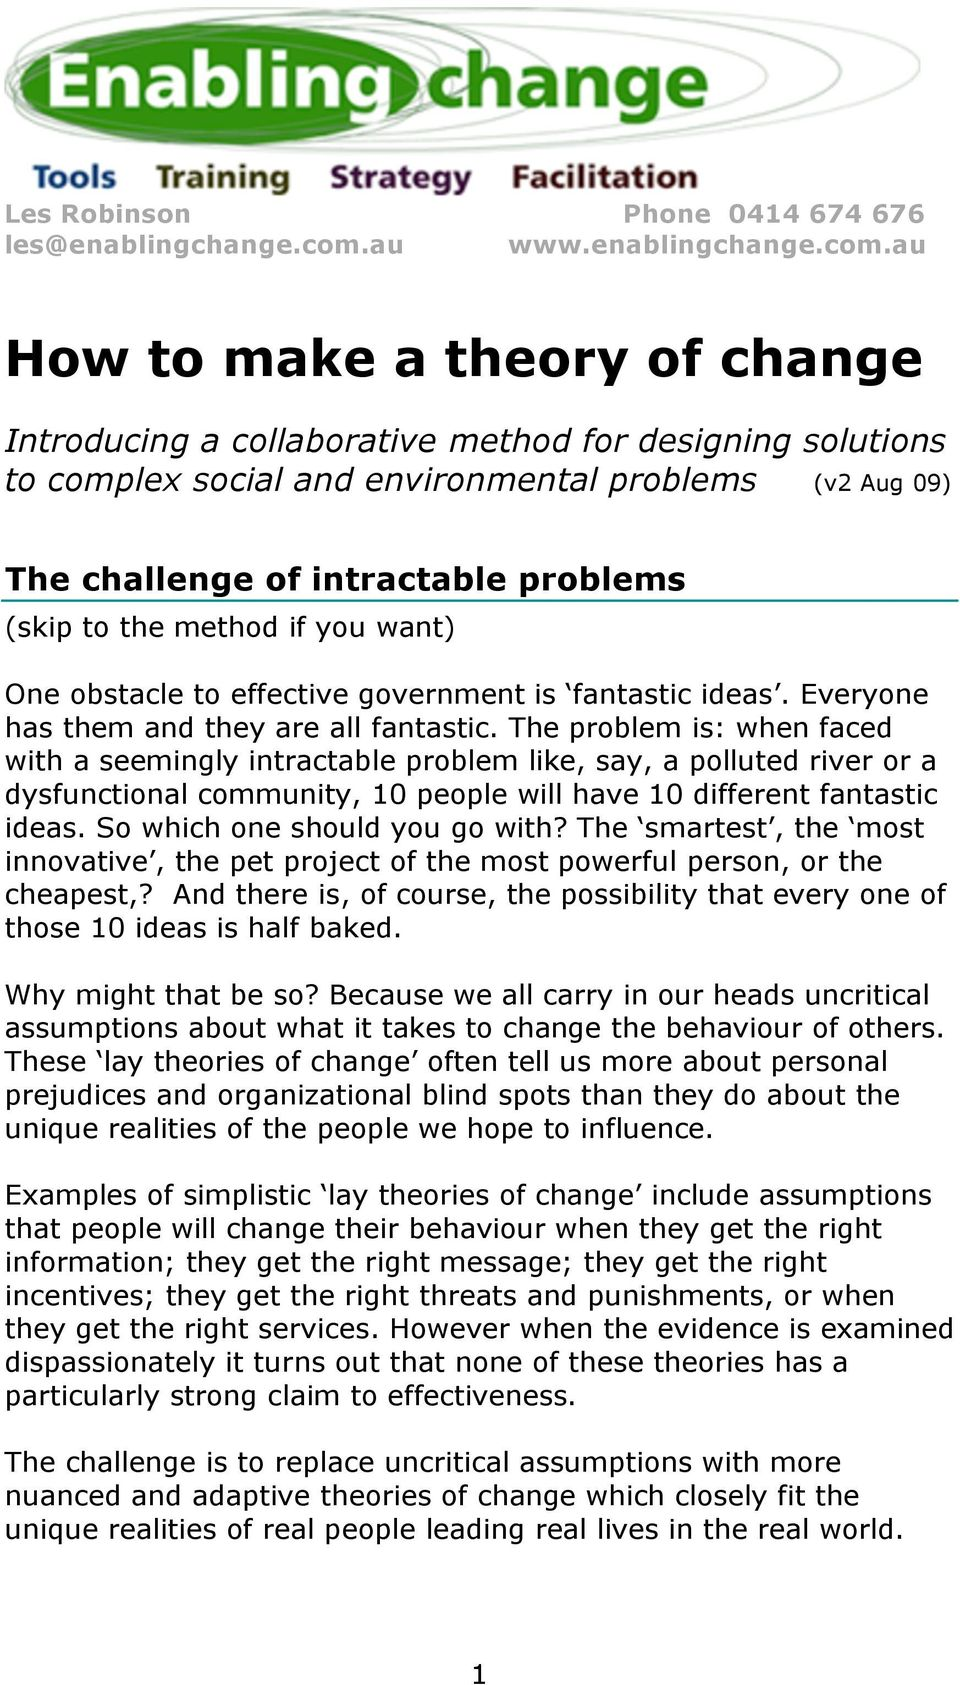 au How to make a theory of change Introducing a collaborative method for designing solutions to complex social and environmental problems (v2 Aug 09) The challenge of intractable problems (skip to